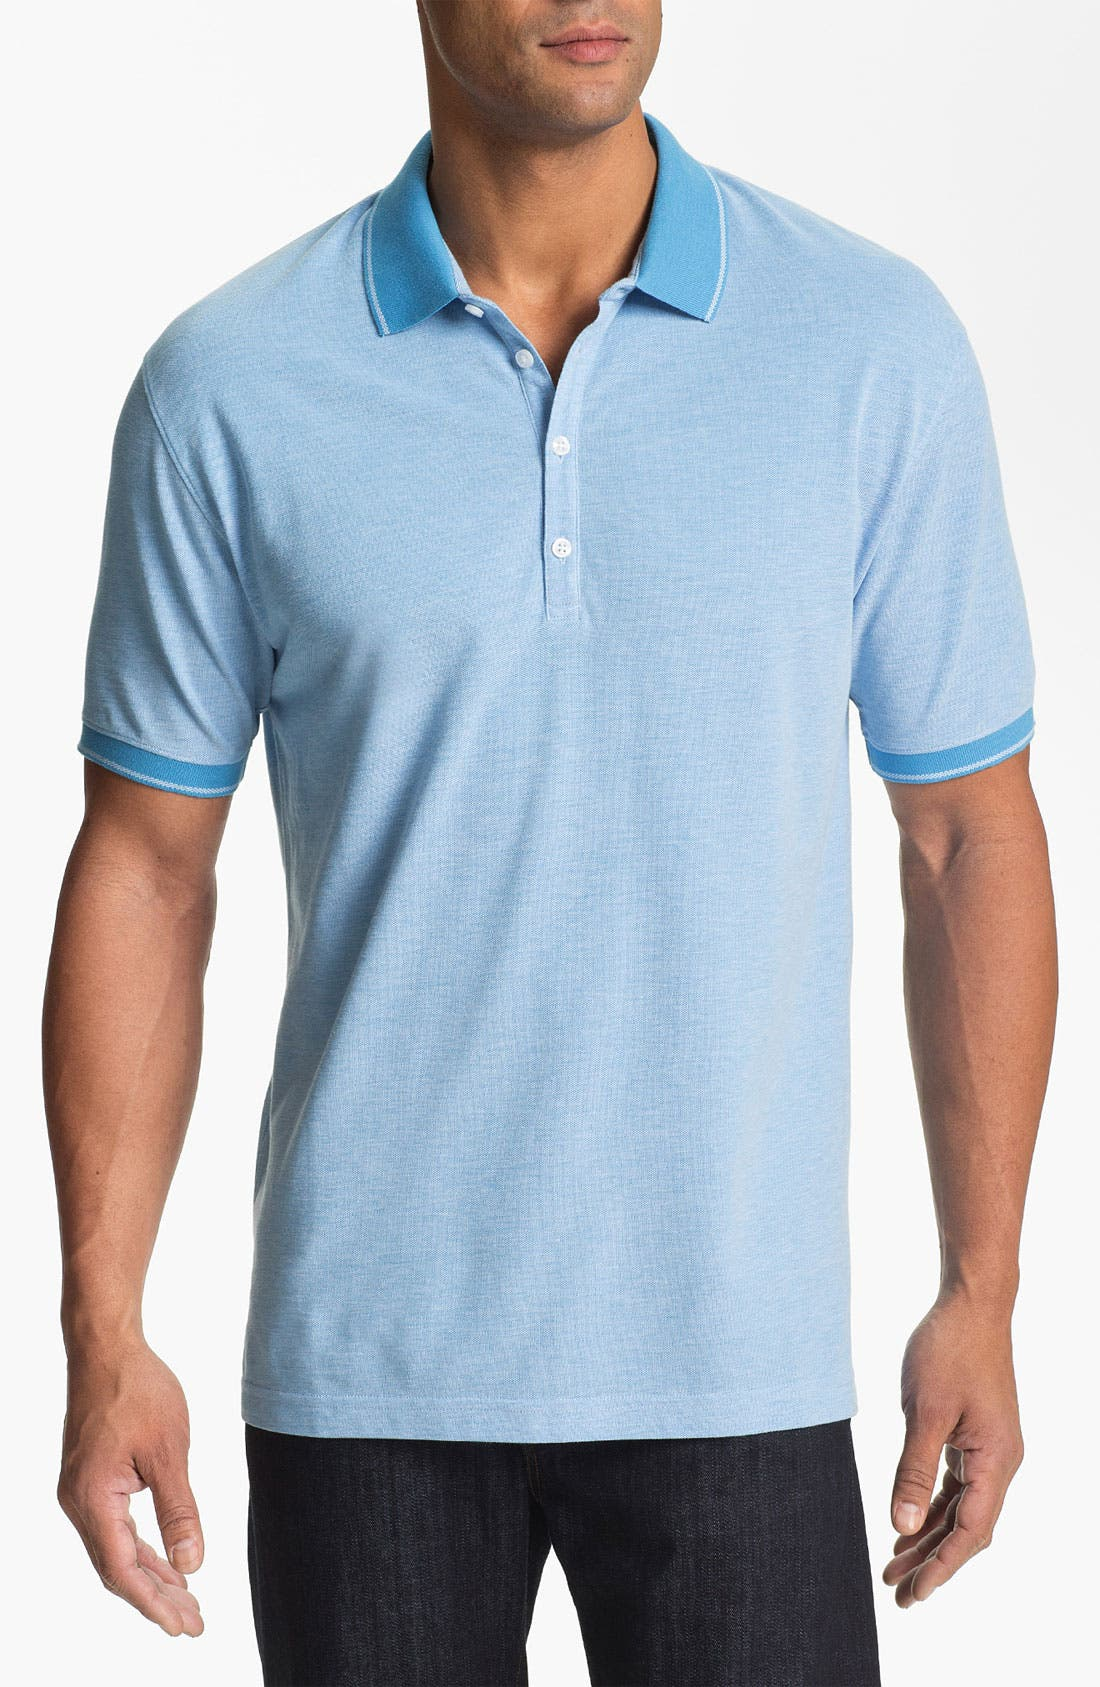 Main Image - Cutter & Buck 'Oxford' Regular Fit Polo (Big & Tall)